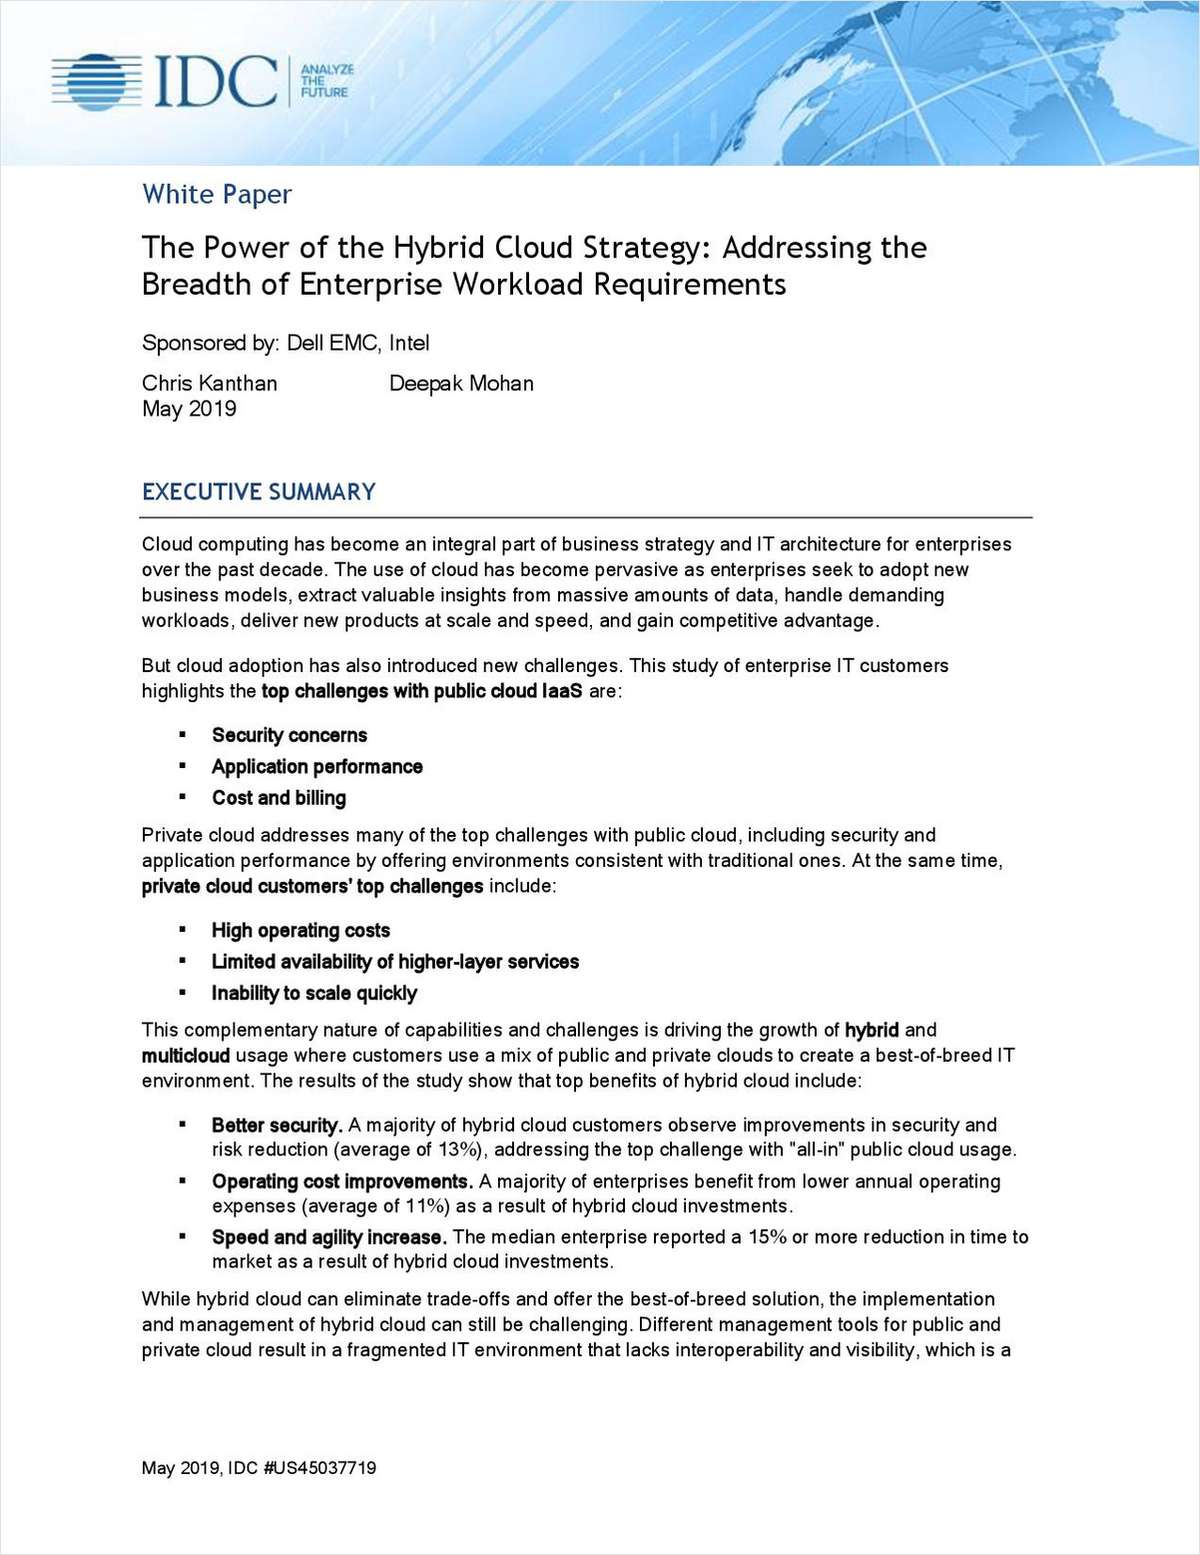 The Power of the Hybrid Cloud Strategy: Addressing the Breadth of Enterprise Workload Requirements